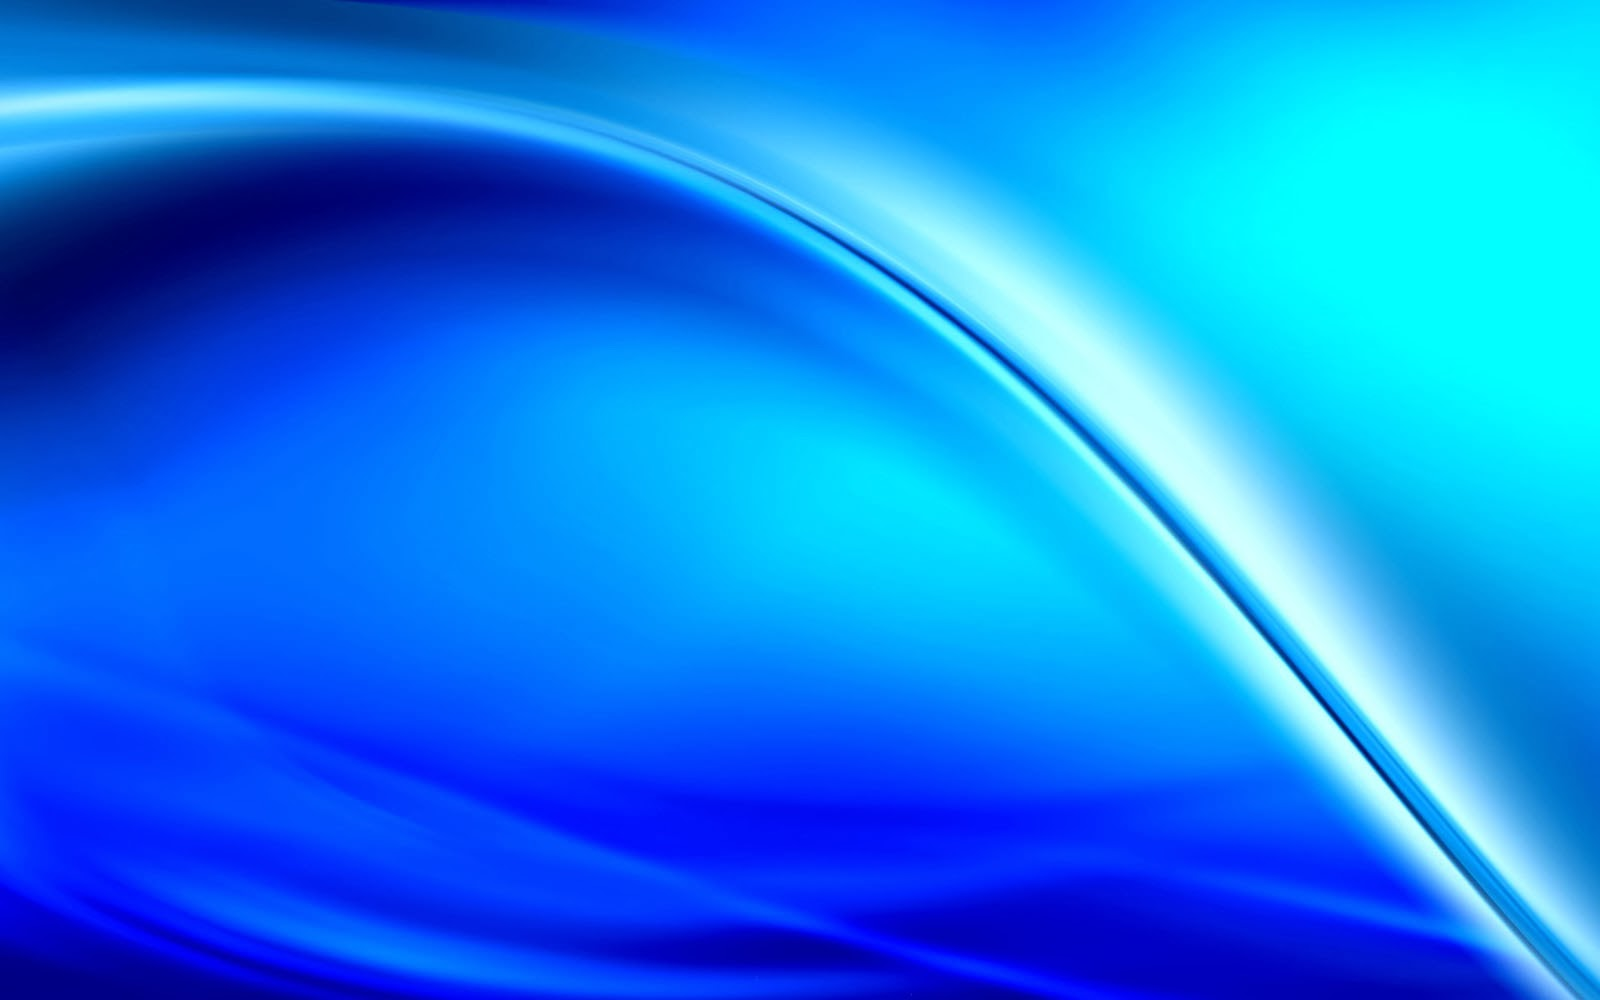 Wallpapers: Abstract Curves Wallpapers